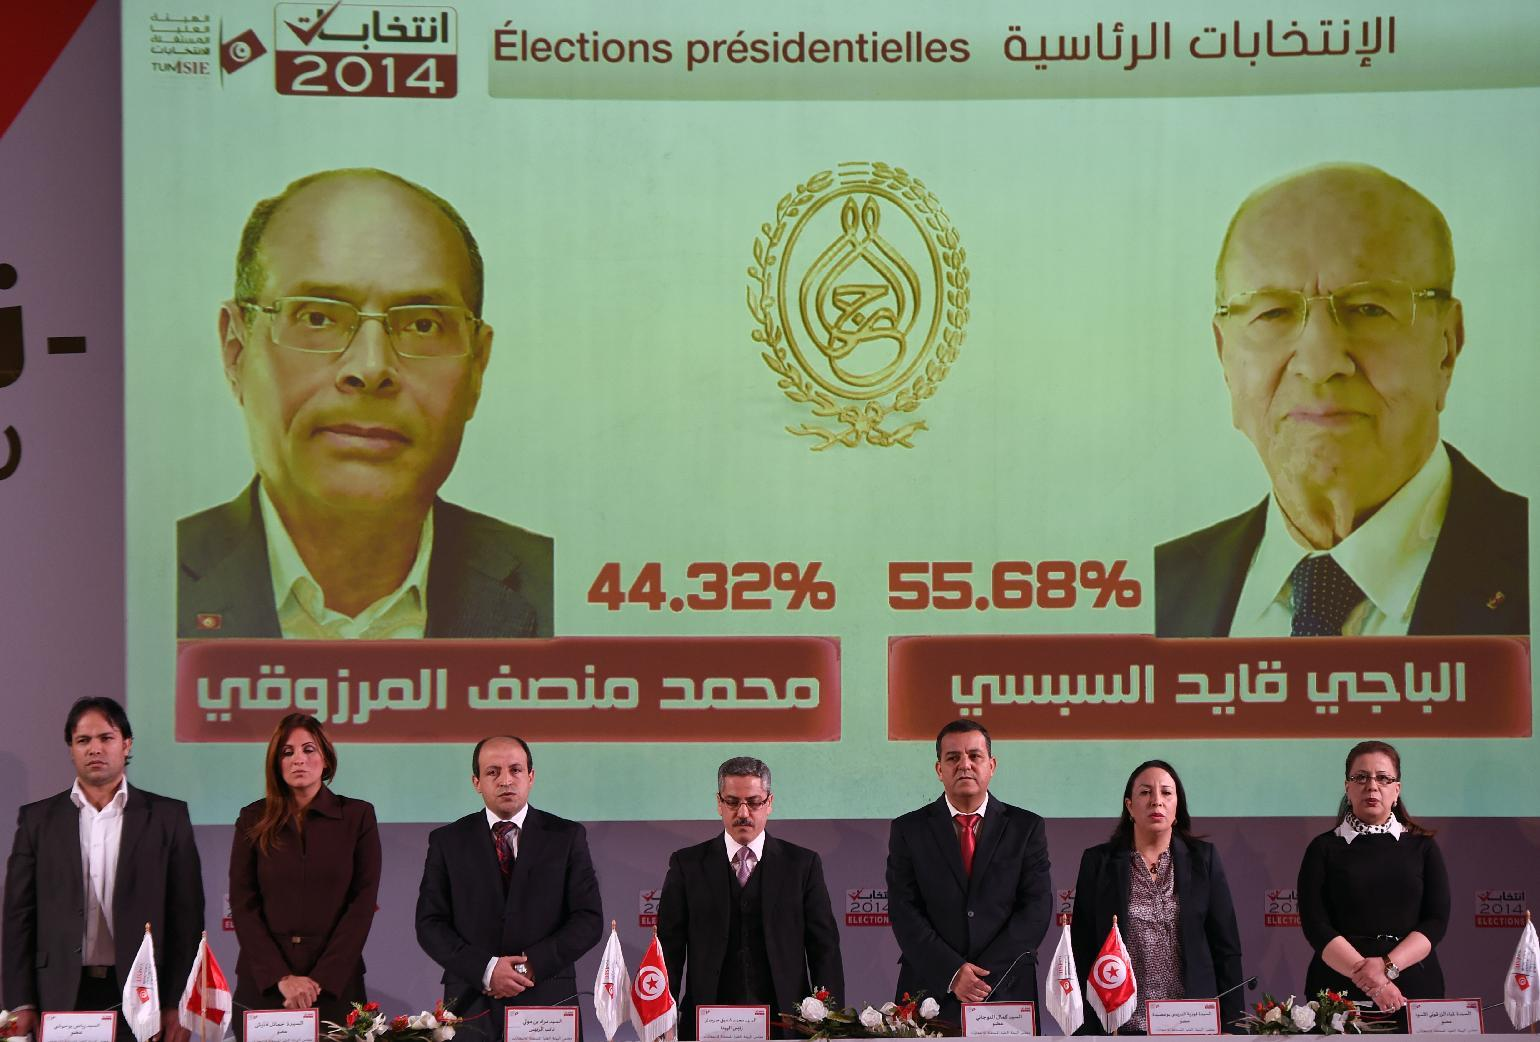 Electoral officials hold a press conference on December 22, 2014 in Tunis to announce the results of Tunisia's presidential vote (AFP Photo/Fethi Belaid)